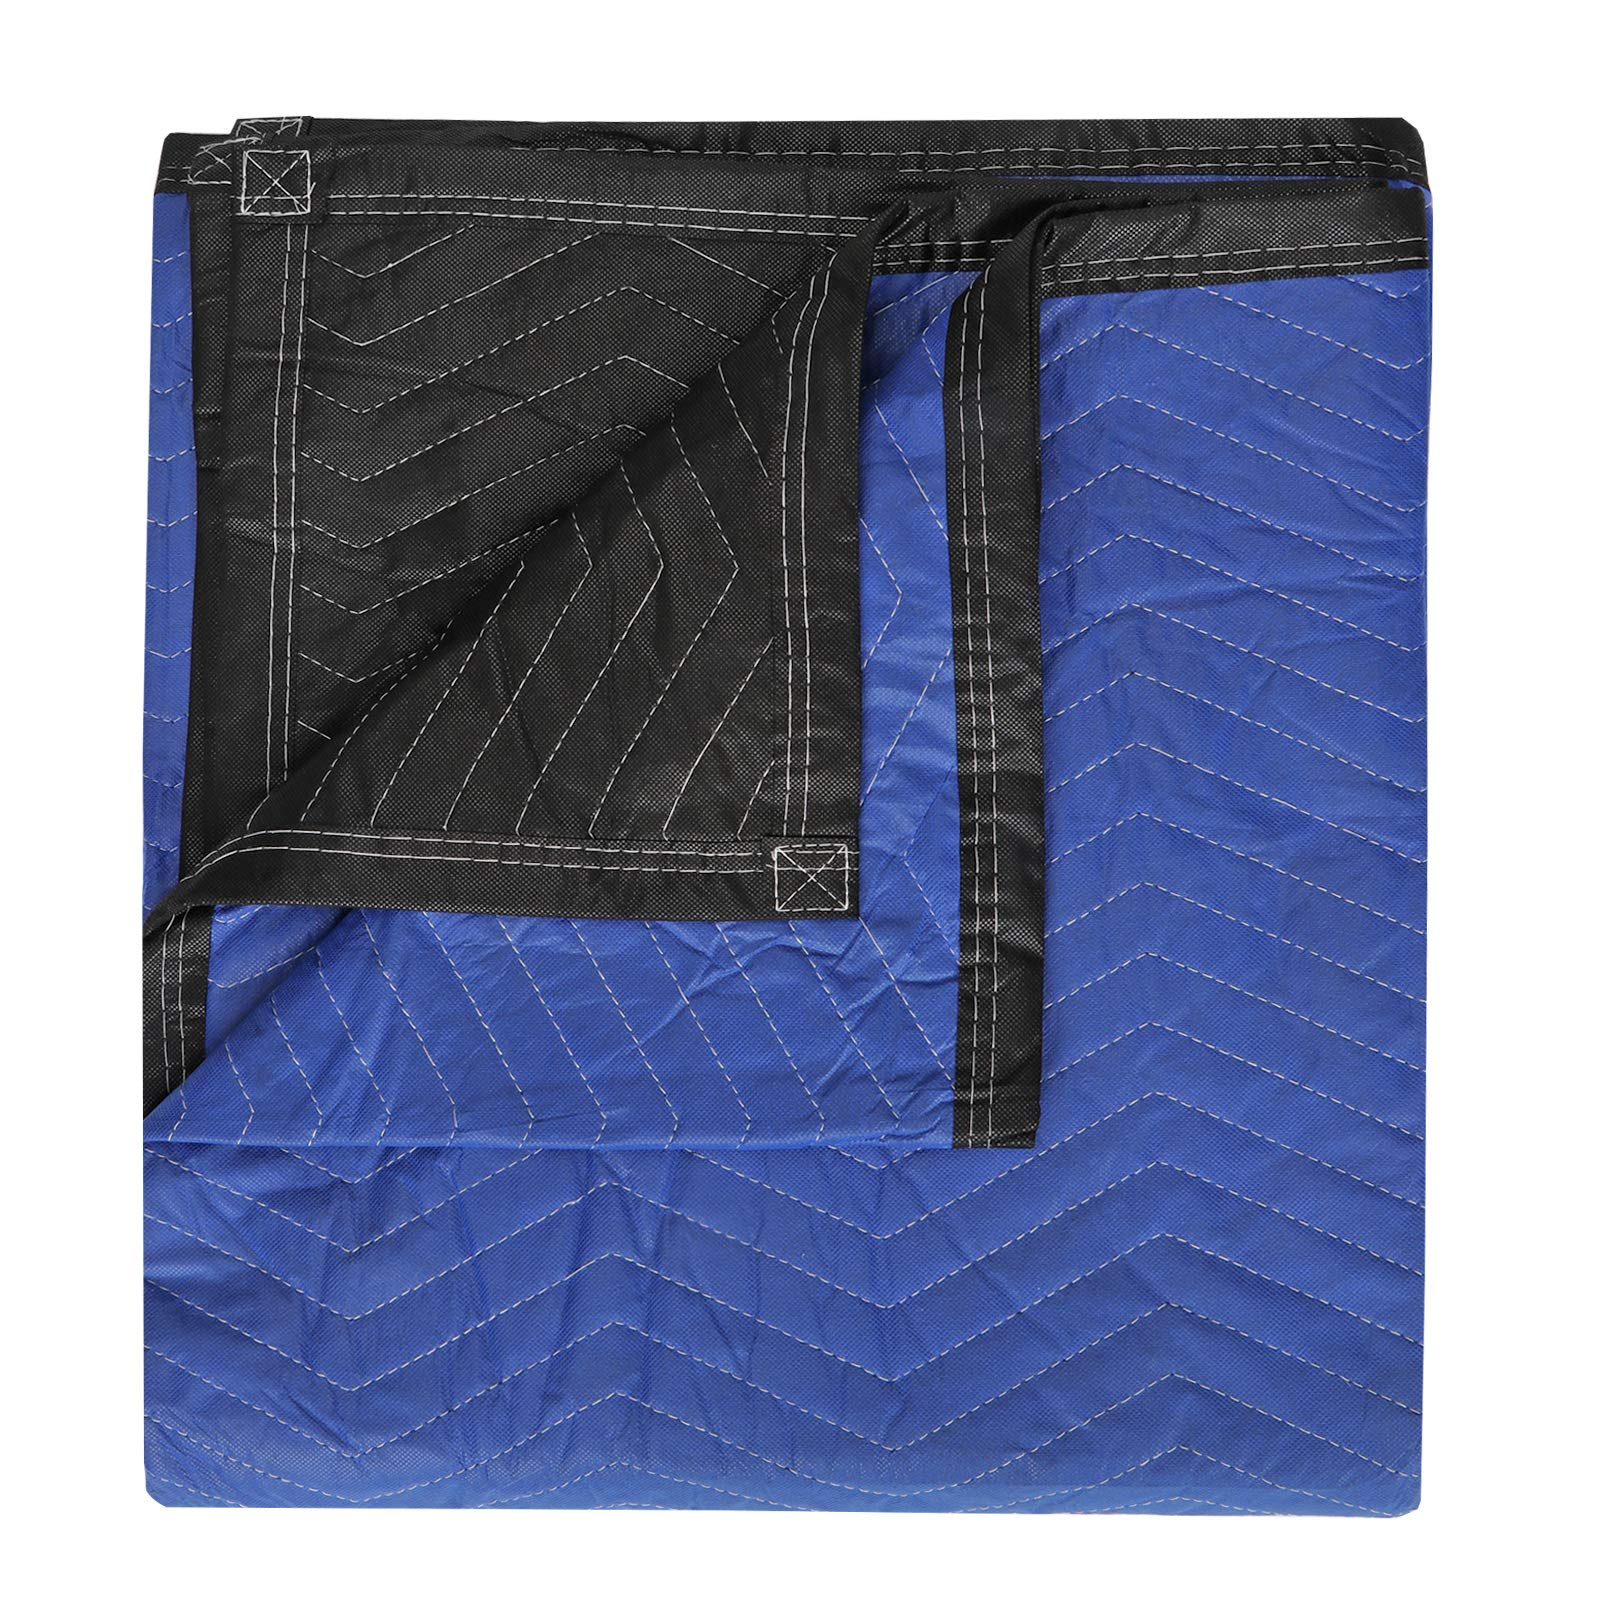 HomGarden 12 Moving & Packing Blankets - 80'' x 72'' Professional Quilted Shipping Furniture Pads Multi Purpose Blankets by HomGarden (Image #5)